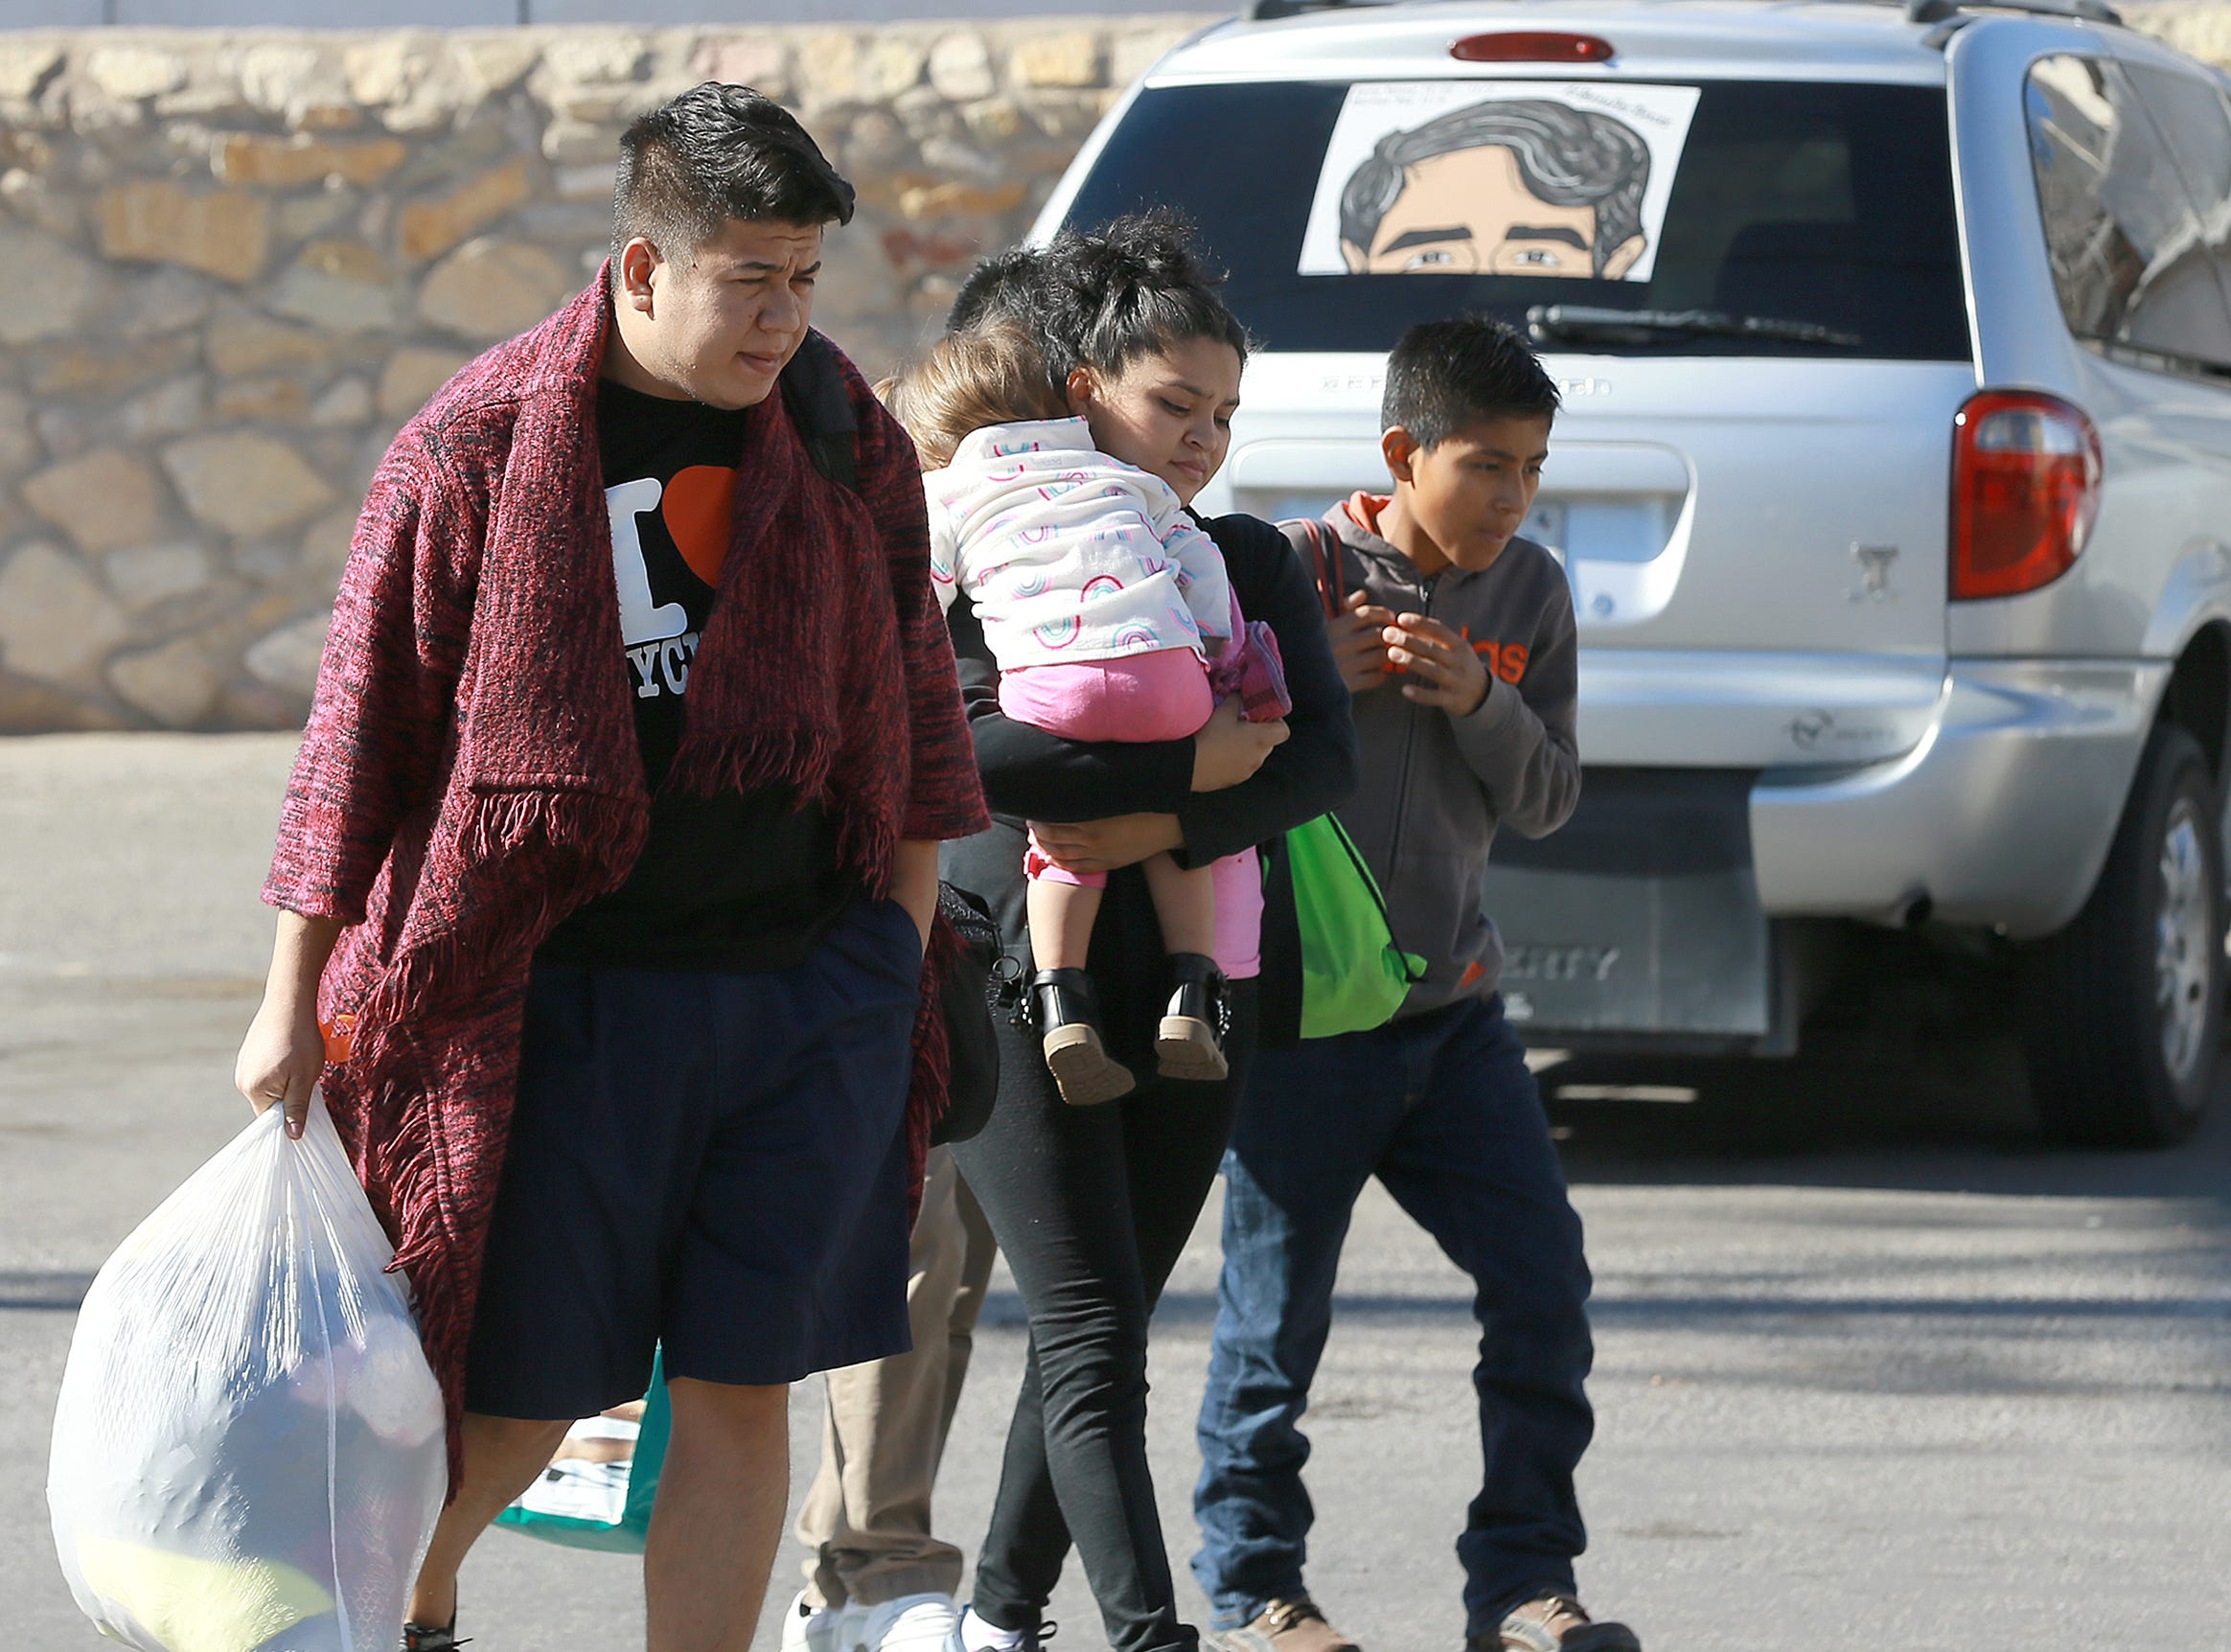 Hundreds of asylum seekers were dropped off Sunday night at the Greyhound bus station in Downtown El Paso before accommodations were made by Annunciation House. Many of the migrants were taken Monday morning back to the Greyhound station to arrange for travel.